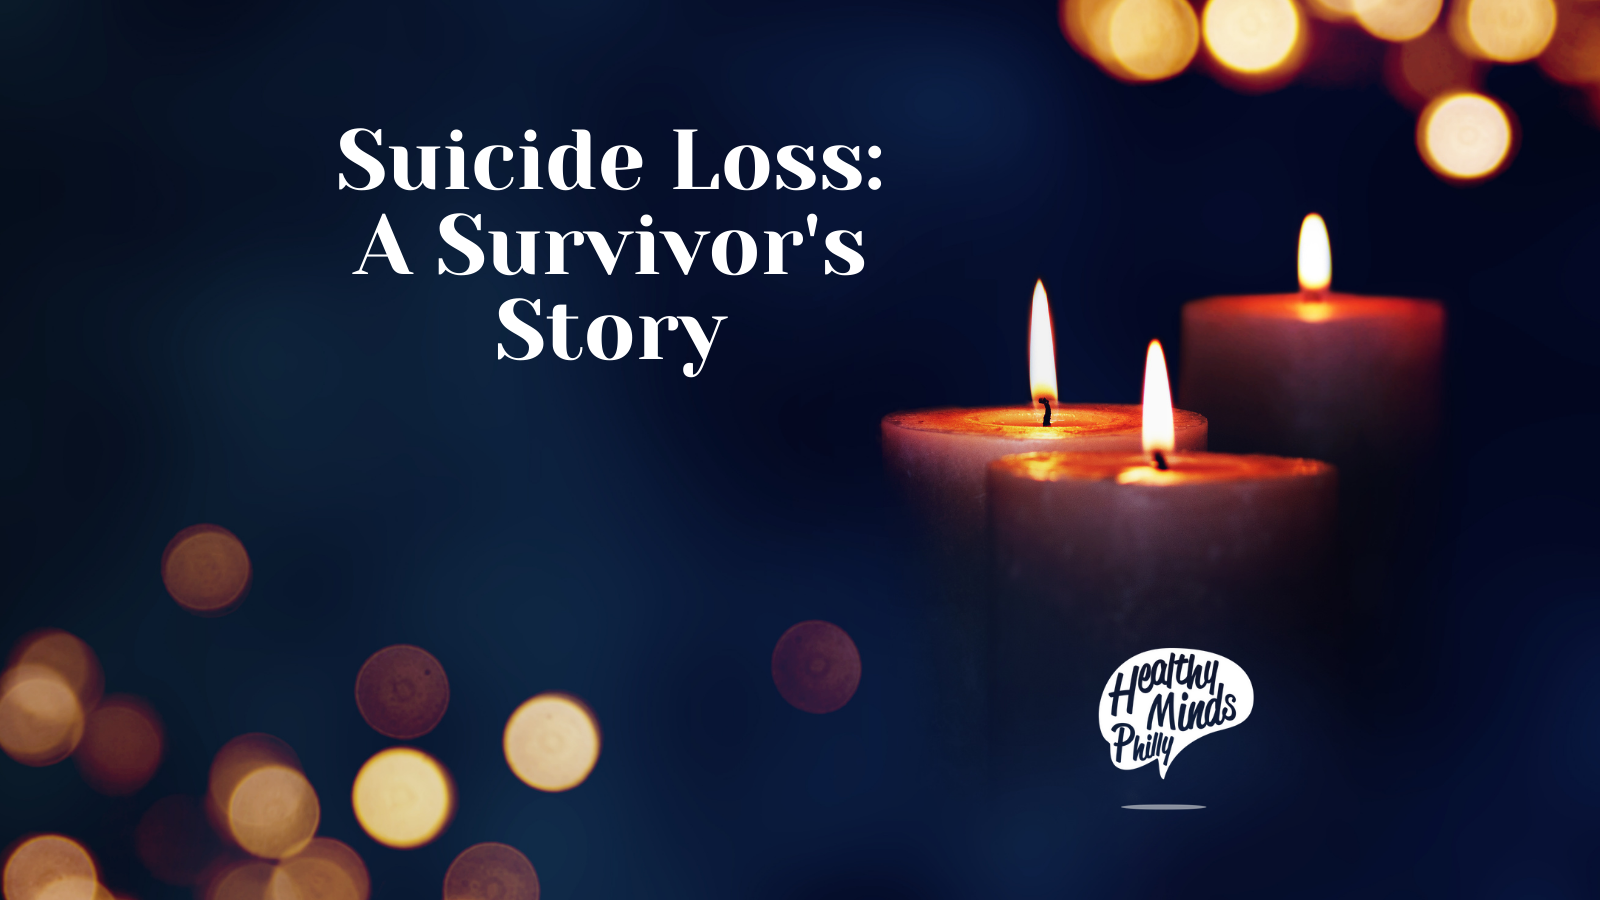 Suicide Loss: A Survivor's Story